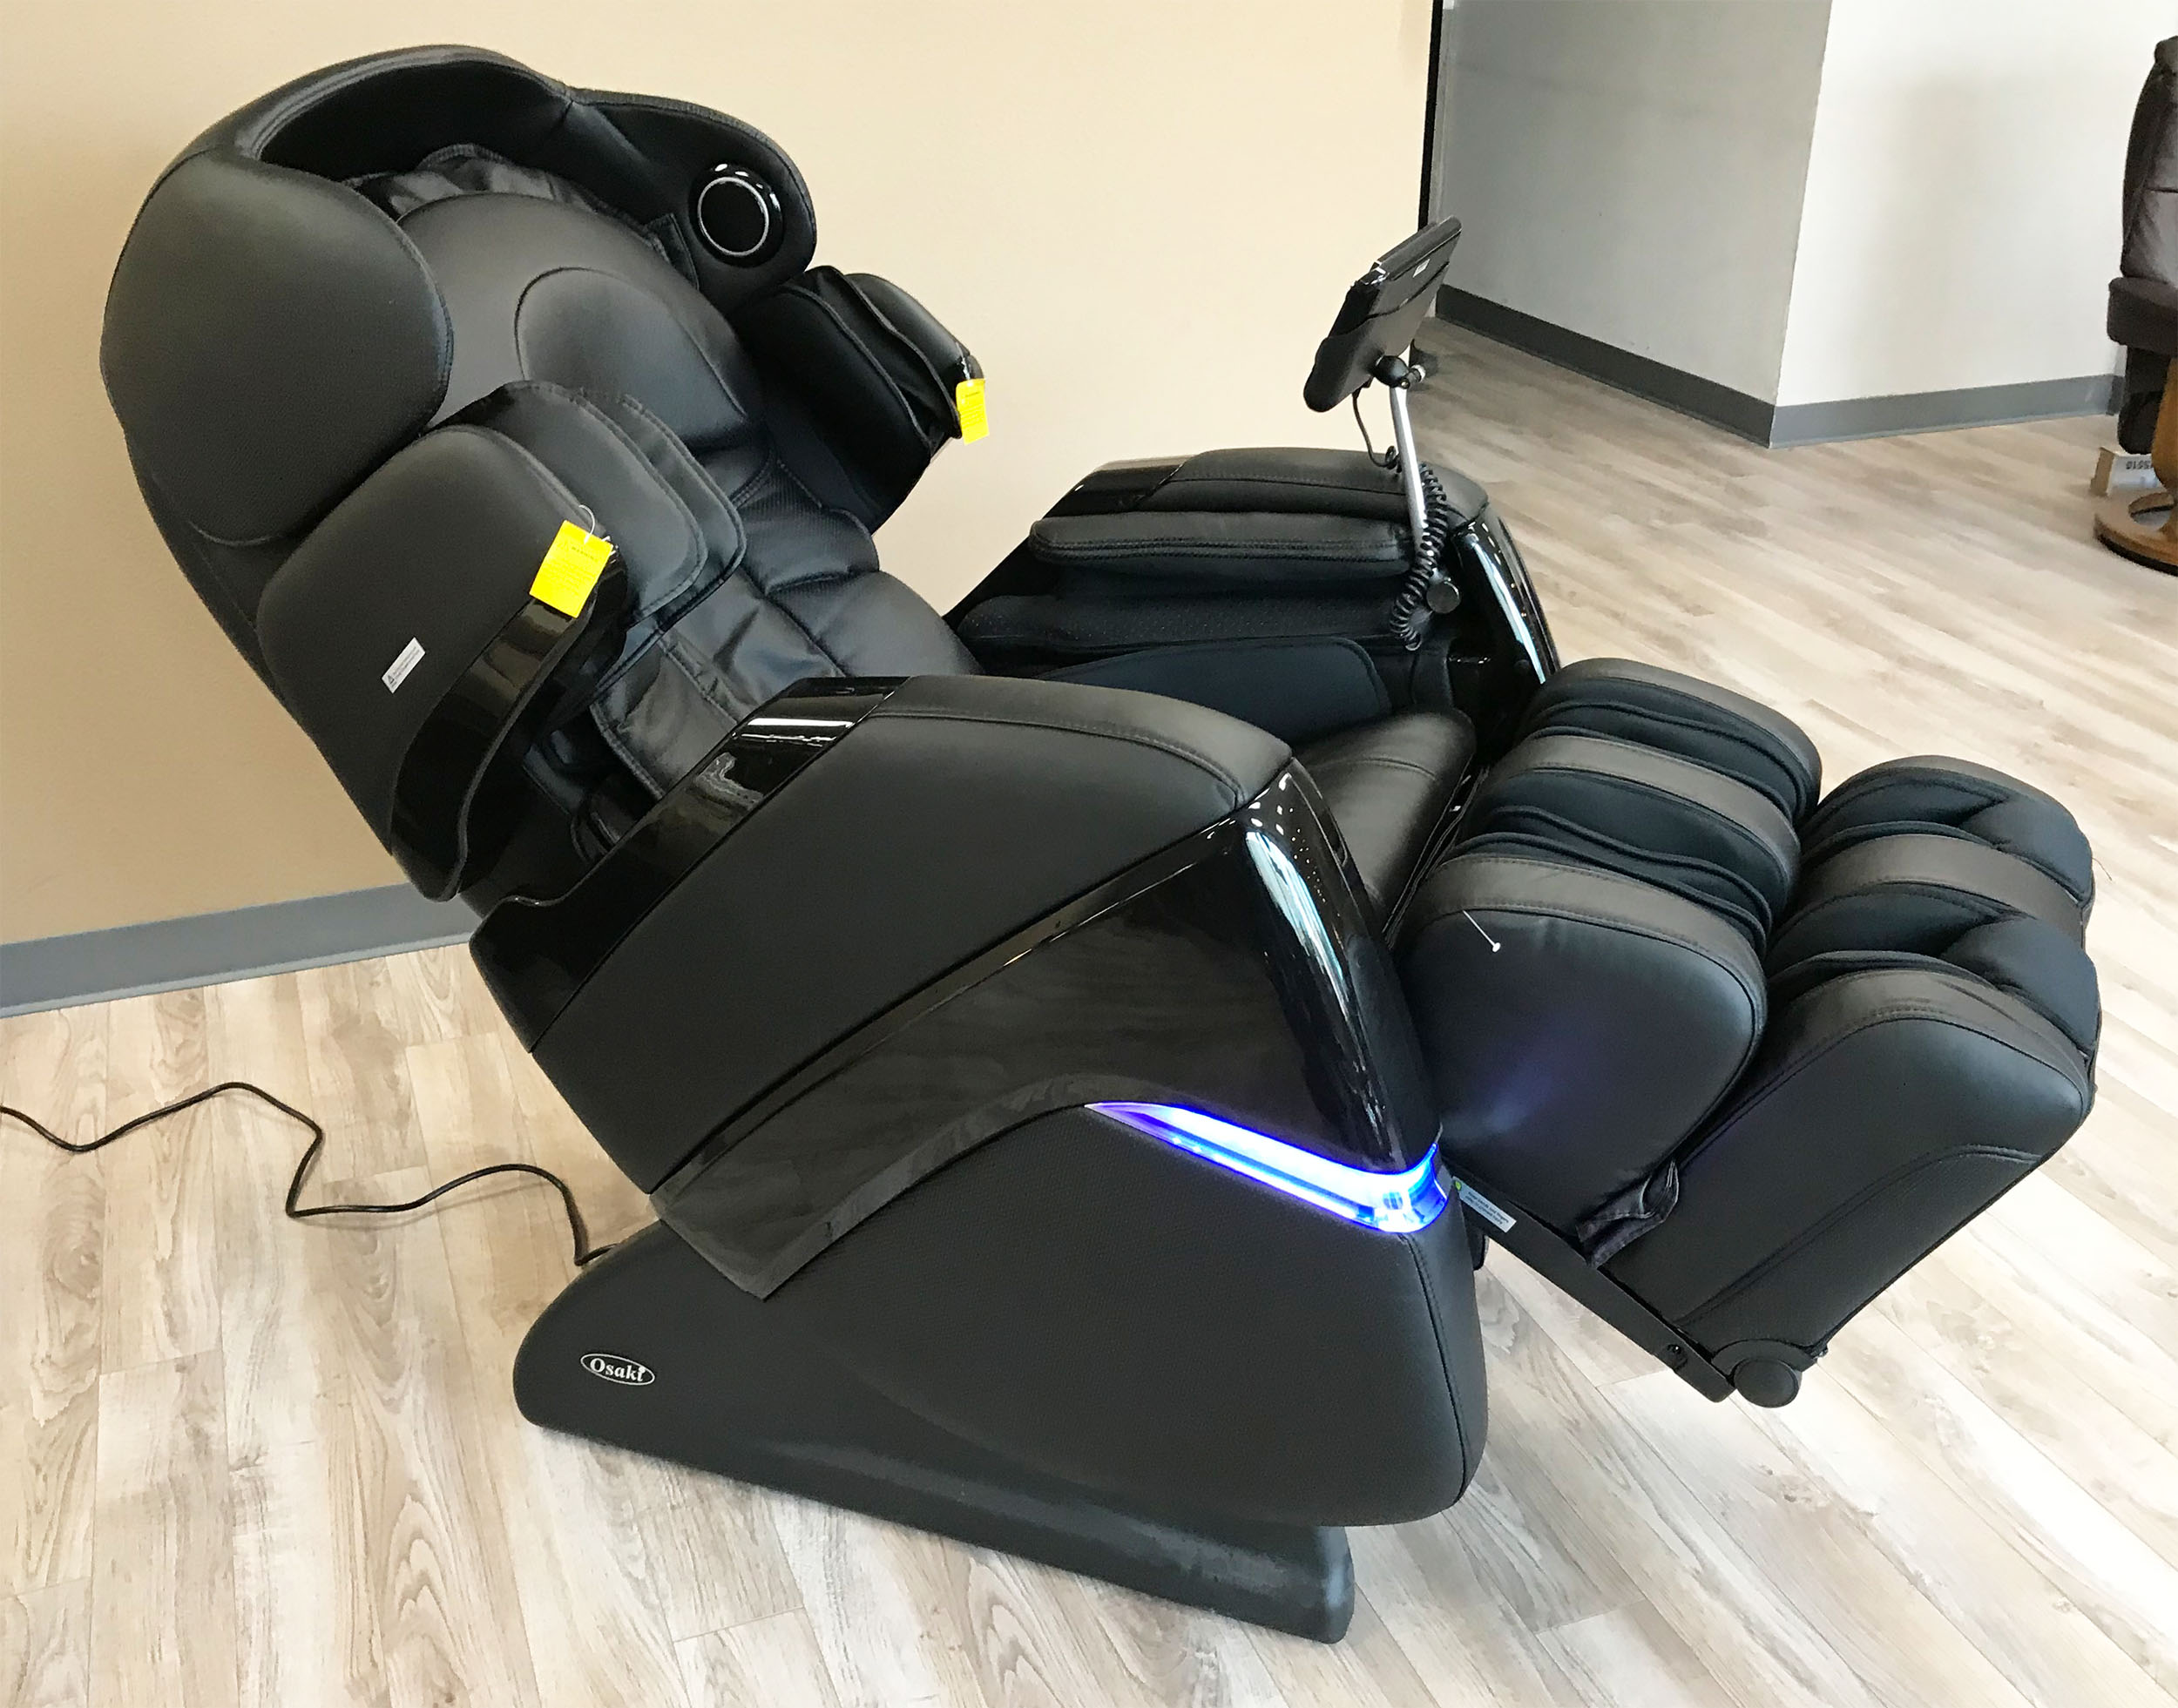 osaki os 3d pro cyber massage chair covers for hire parties zero gravity recliner and